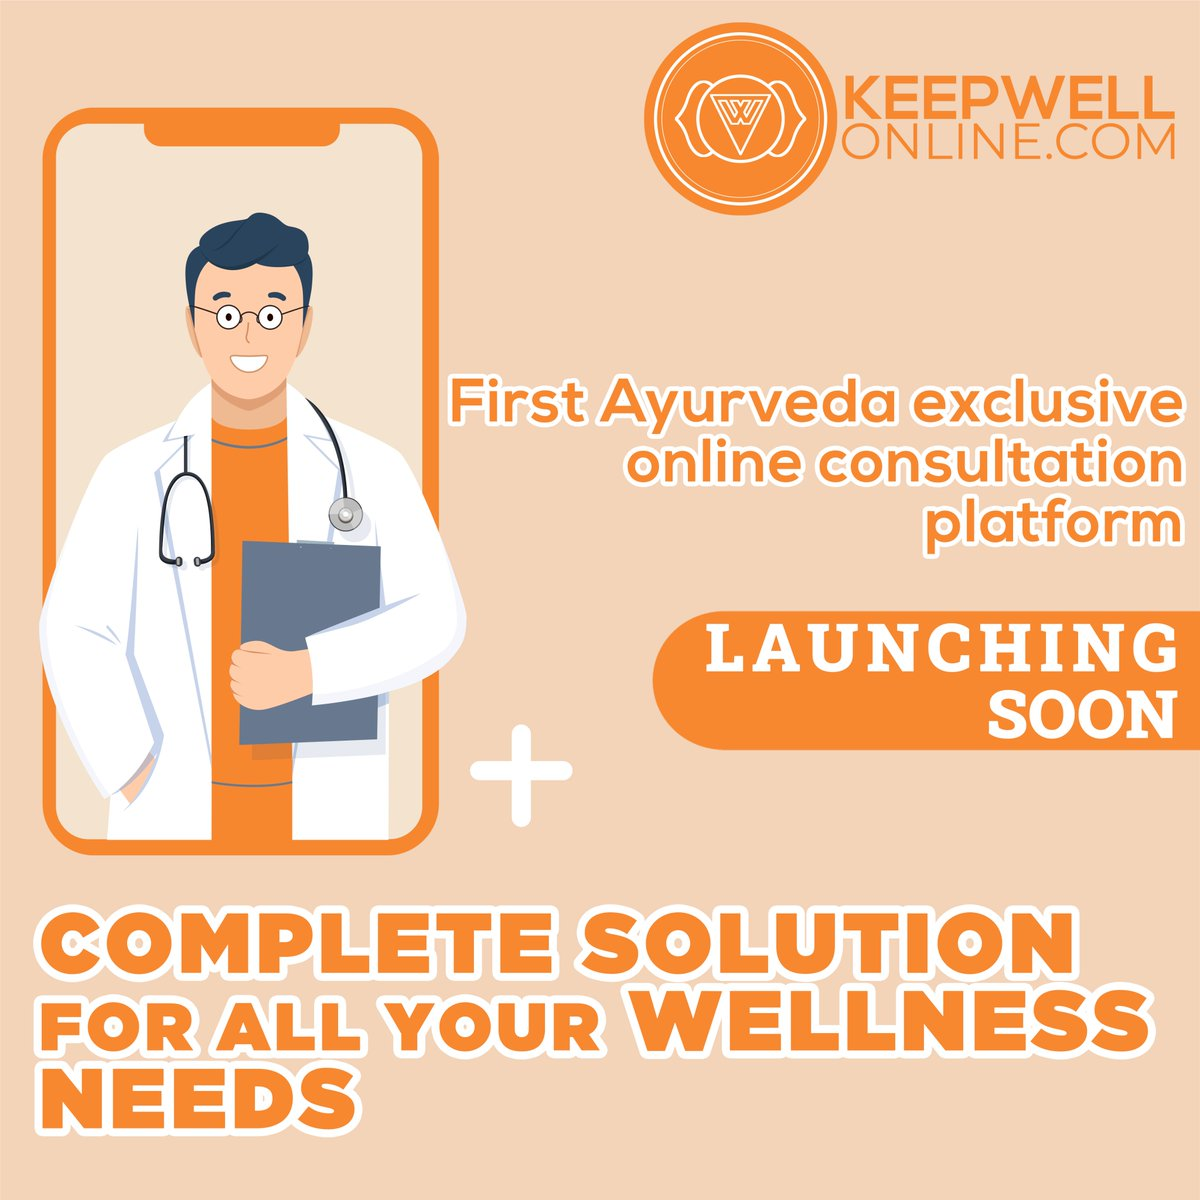 Experience the traditional treatment method of Ayurveda and enjoy a rejuvenated life. LAUNCHING SOON...    #ayurveda #onlineconsultation #onlinedoctor #treatment #doctor #medicine